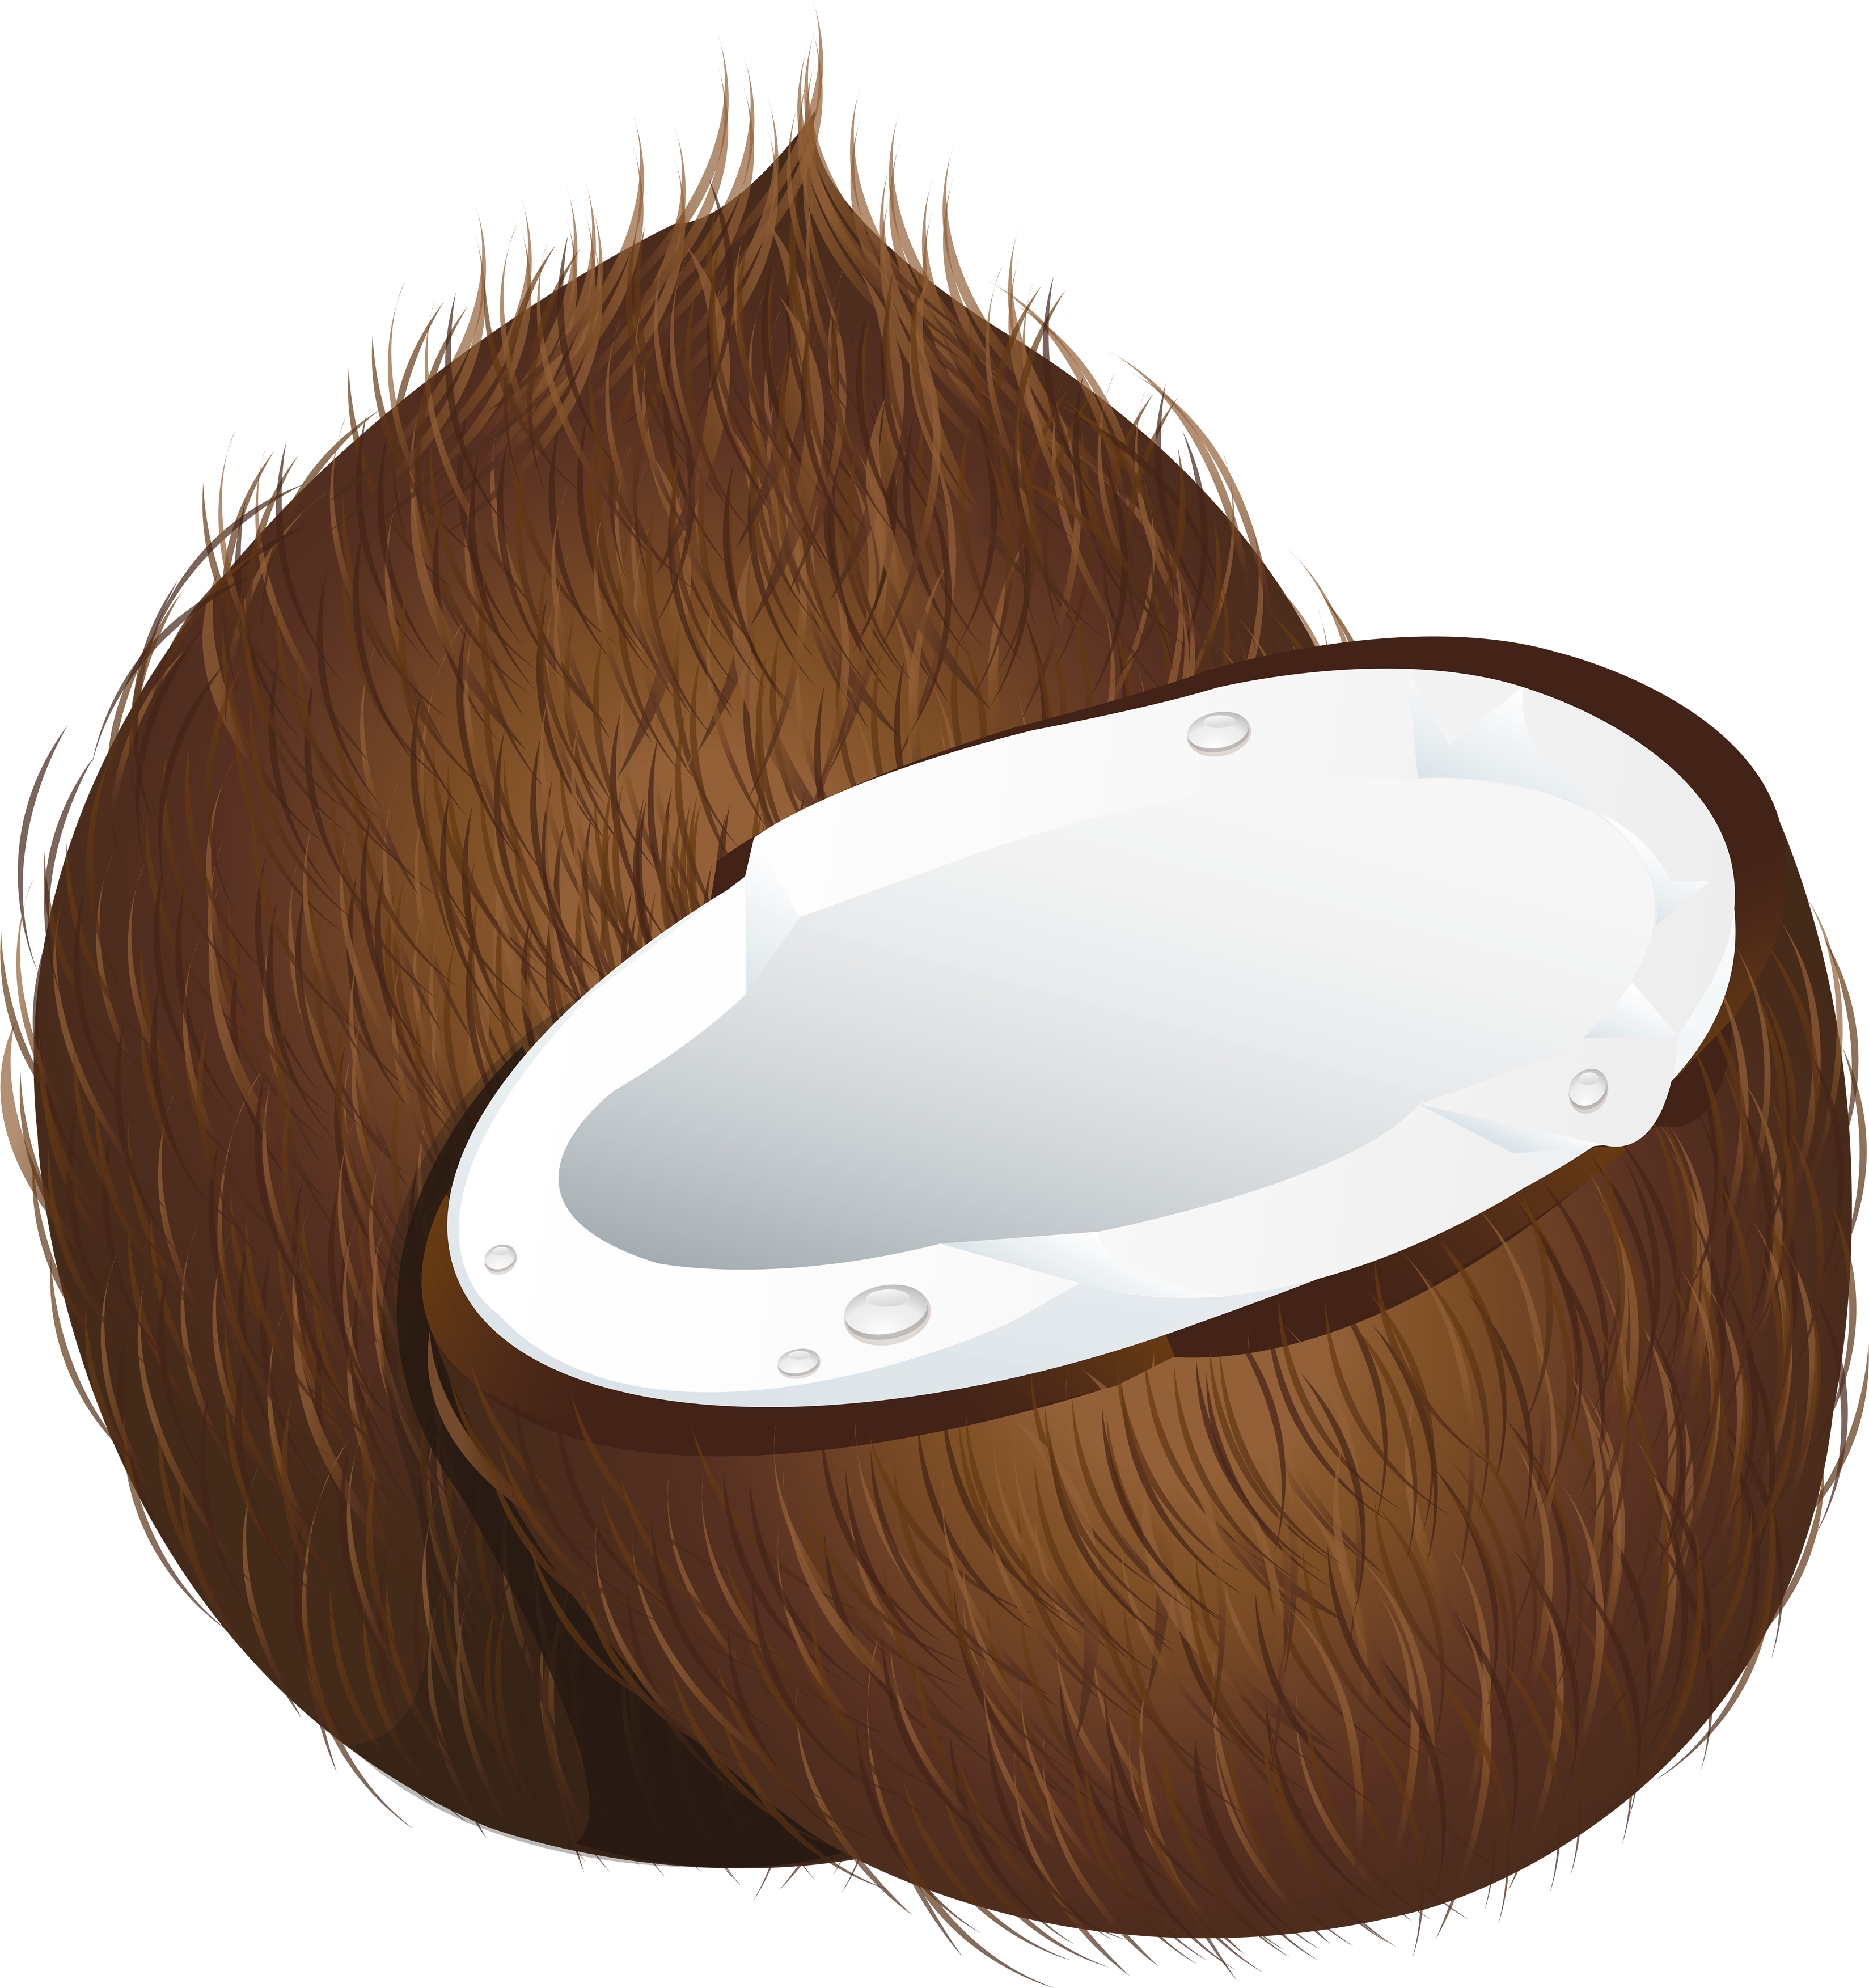 Coconut cliparts clipart stock Free Coconut Cliparts, Download Free Clip Art, Free Clip Art on ... clipart stock